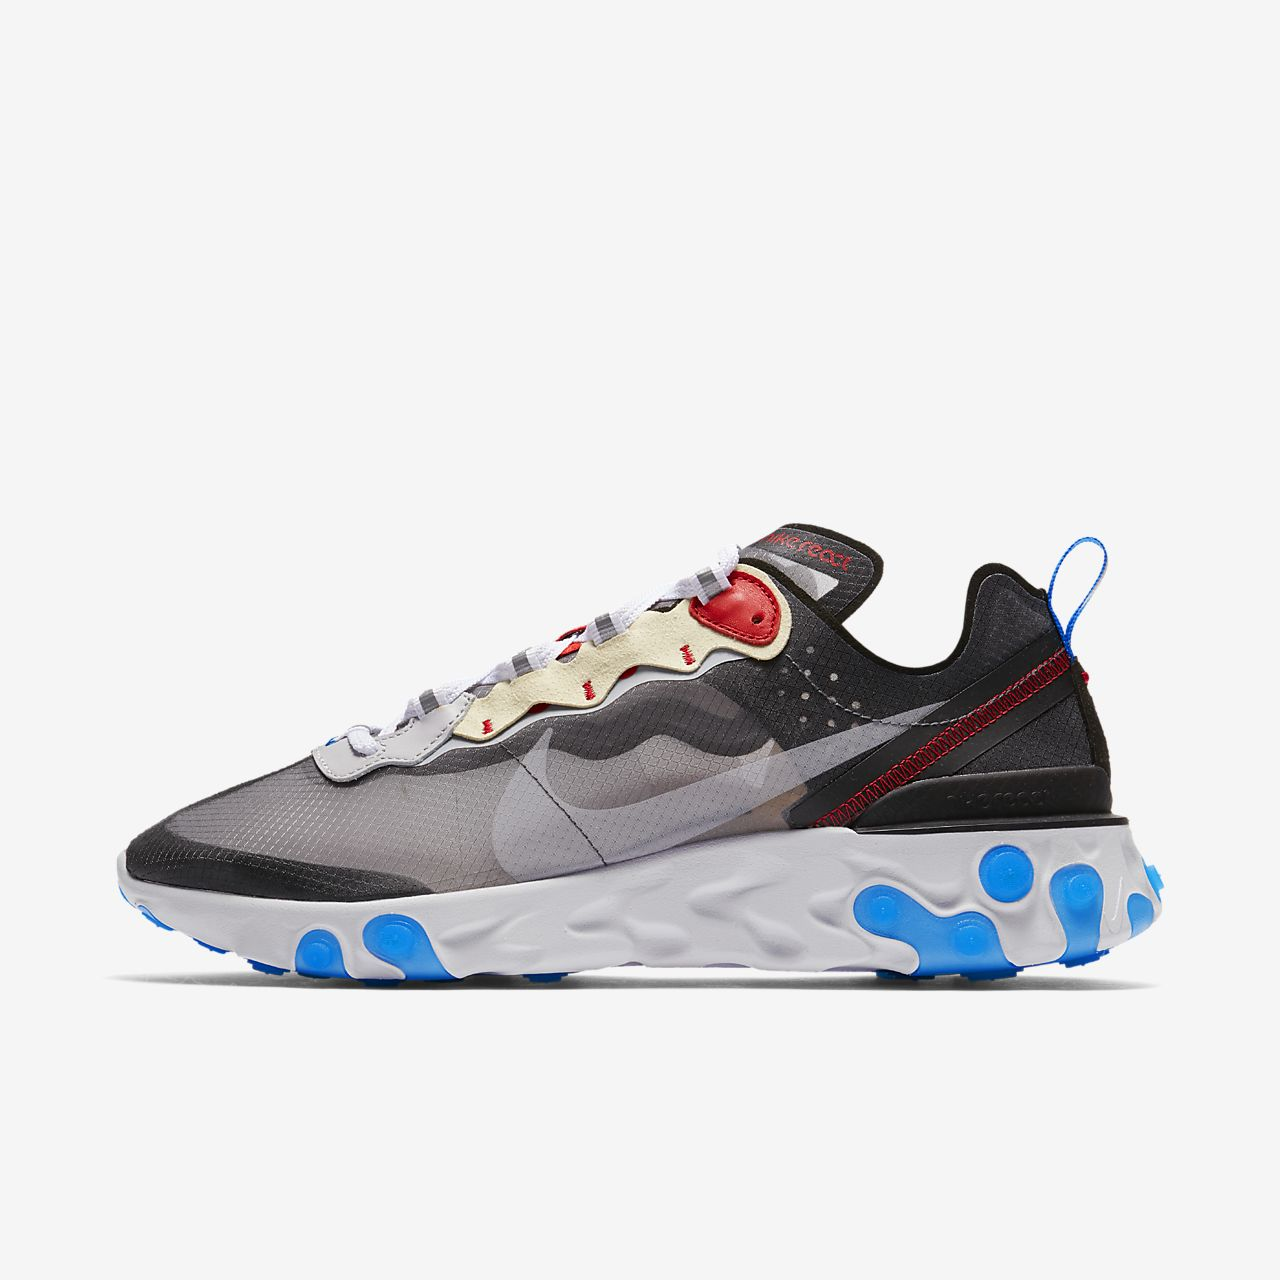 best sneakers b9f57 e1c65 ... Chaussure Nike React Element 87 pour Homme